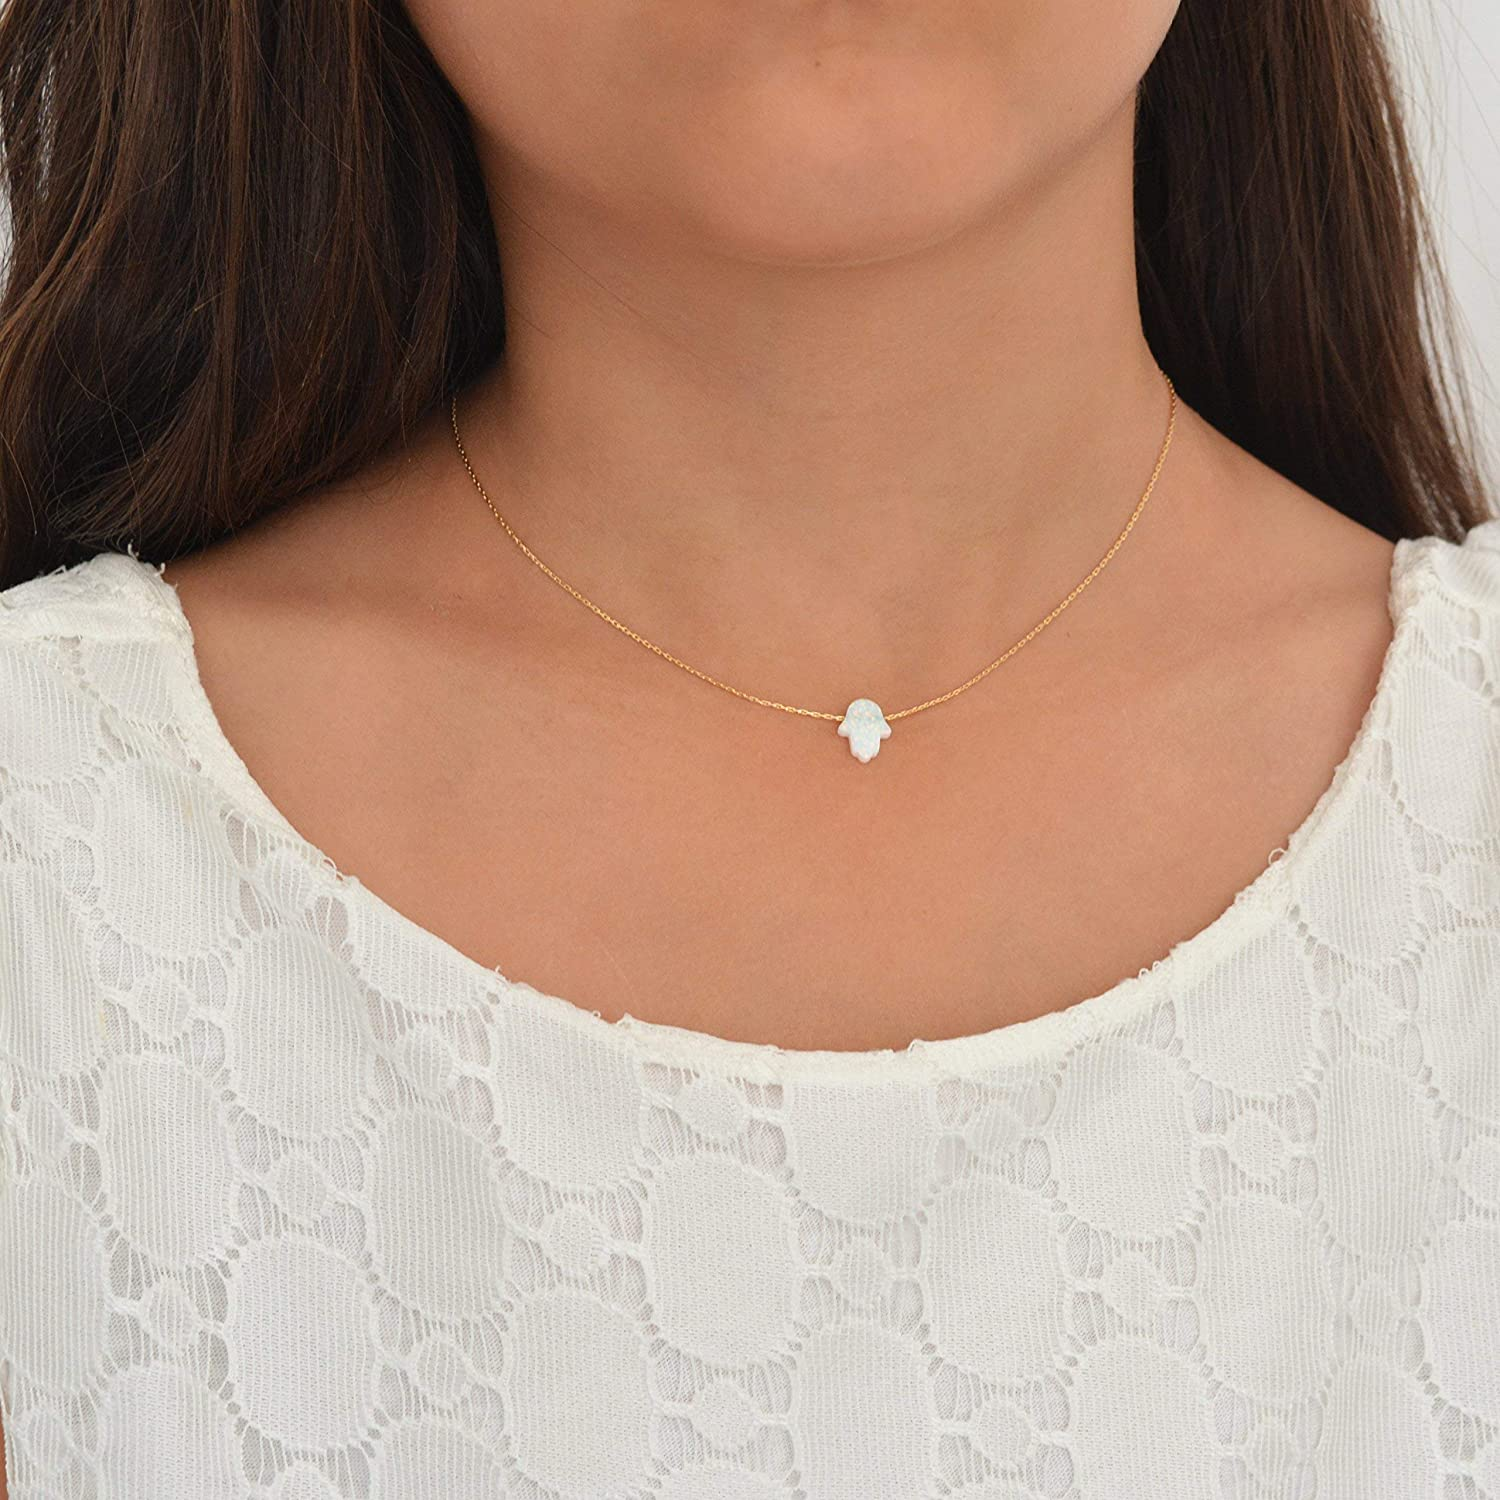 White Opal Hamsa hand Necklace 14k Gold Filled 16 inch 2 extension